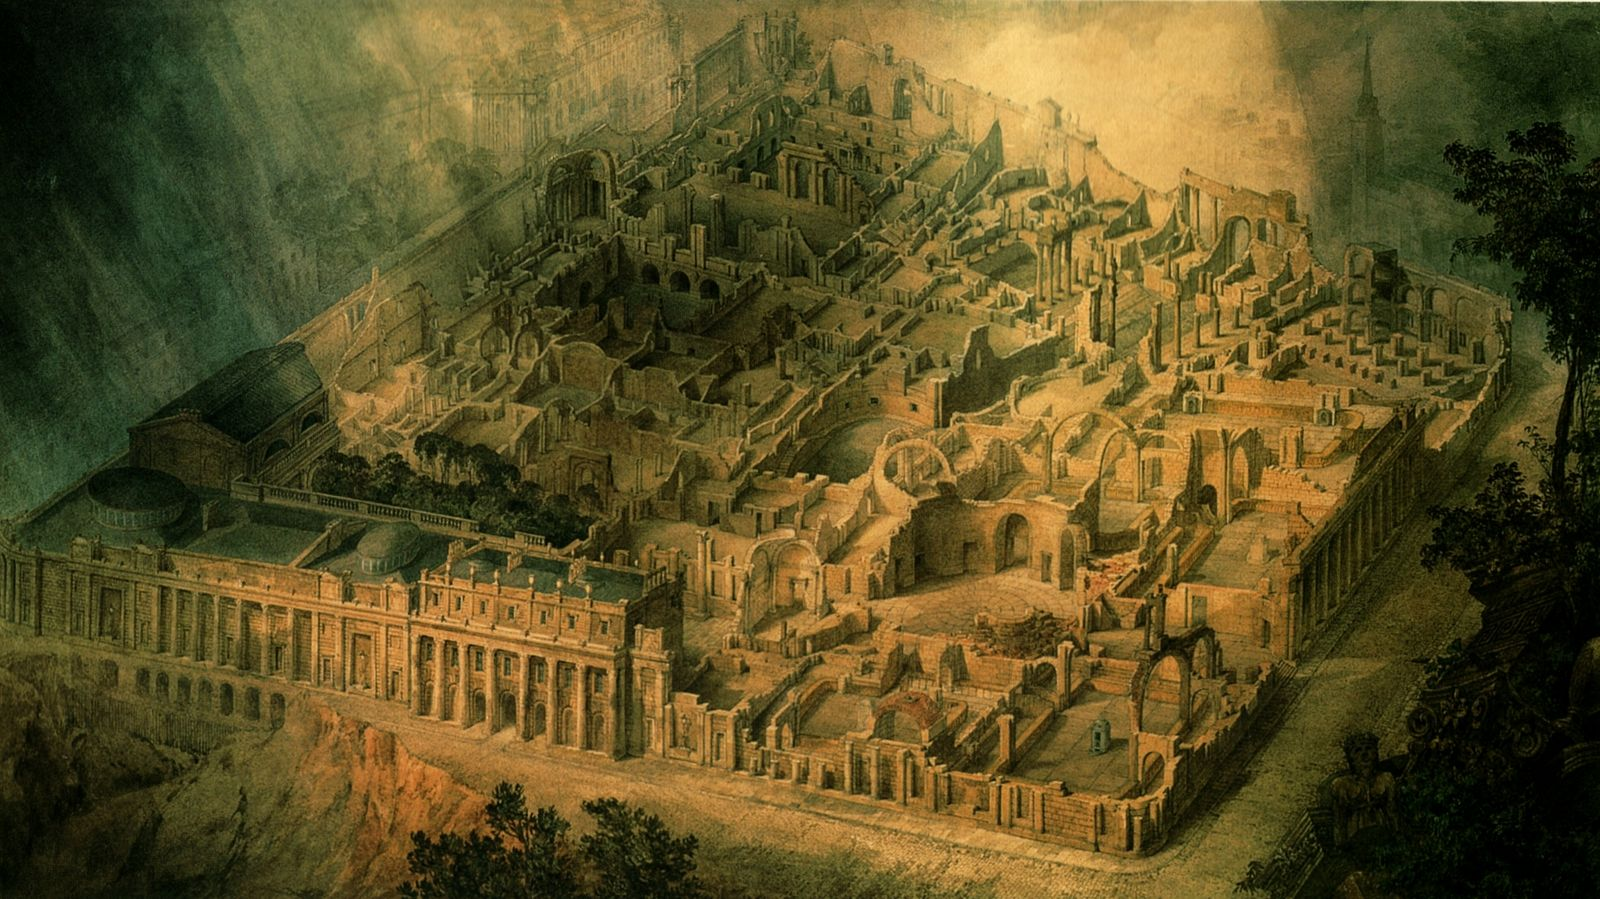 Joseph Gandy, Soane's Bank of England as a ruin, 1830